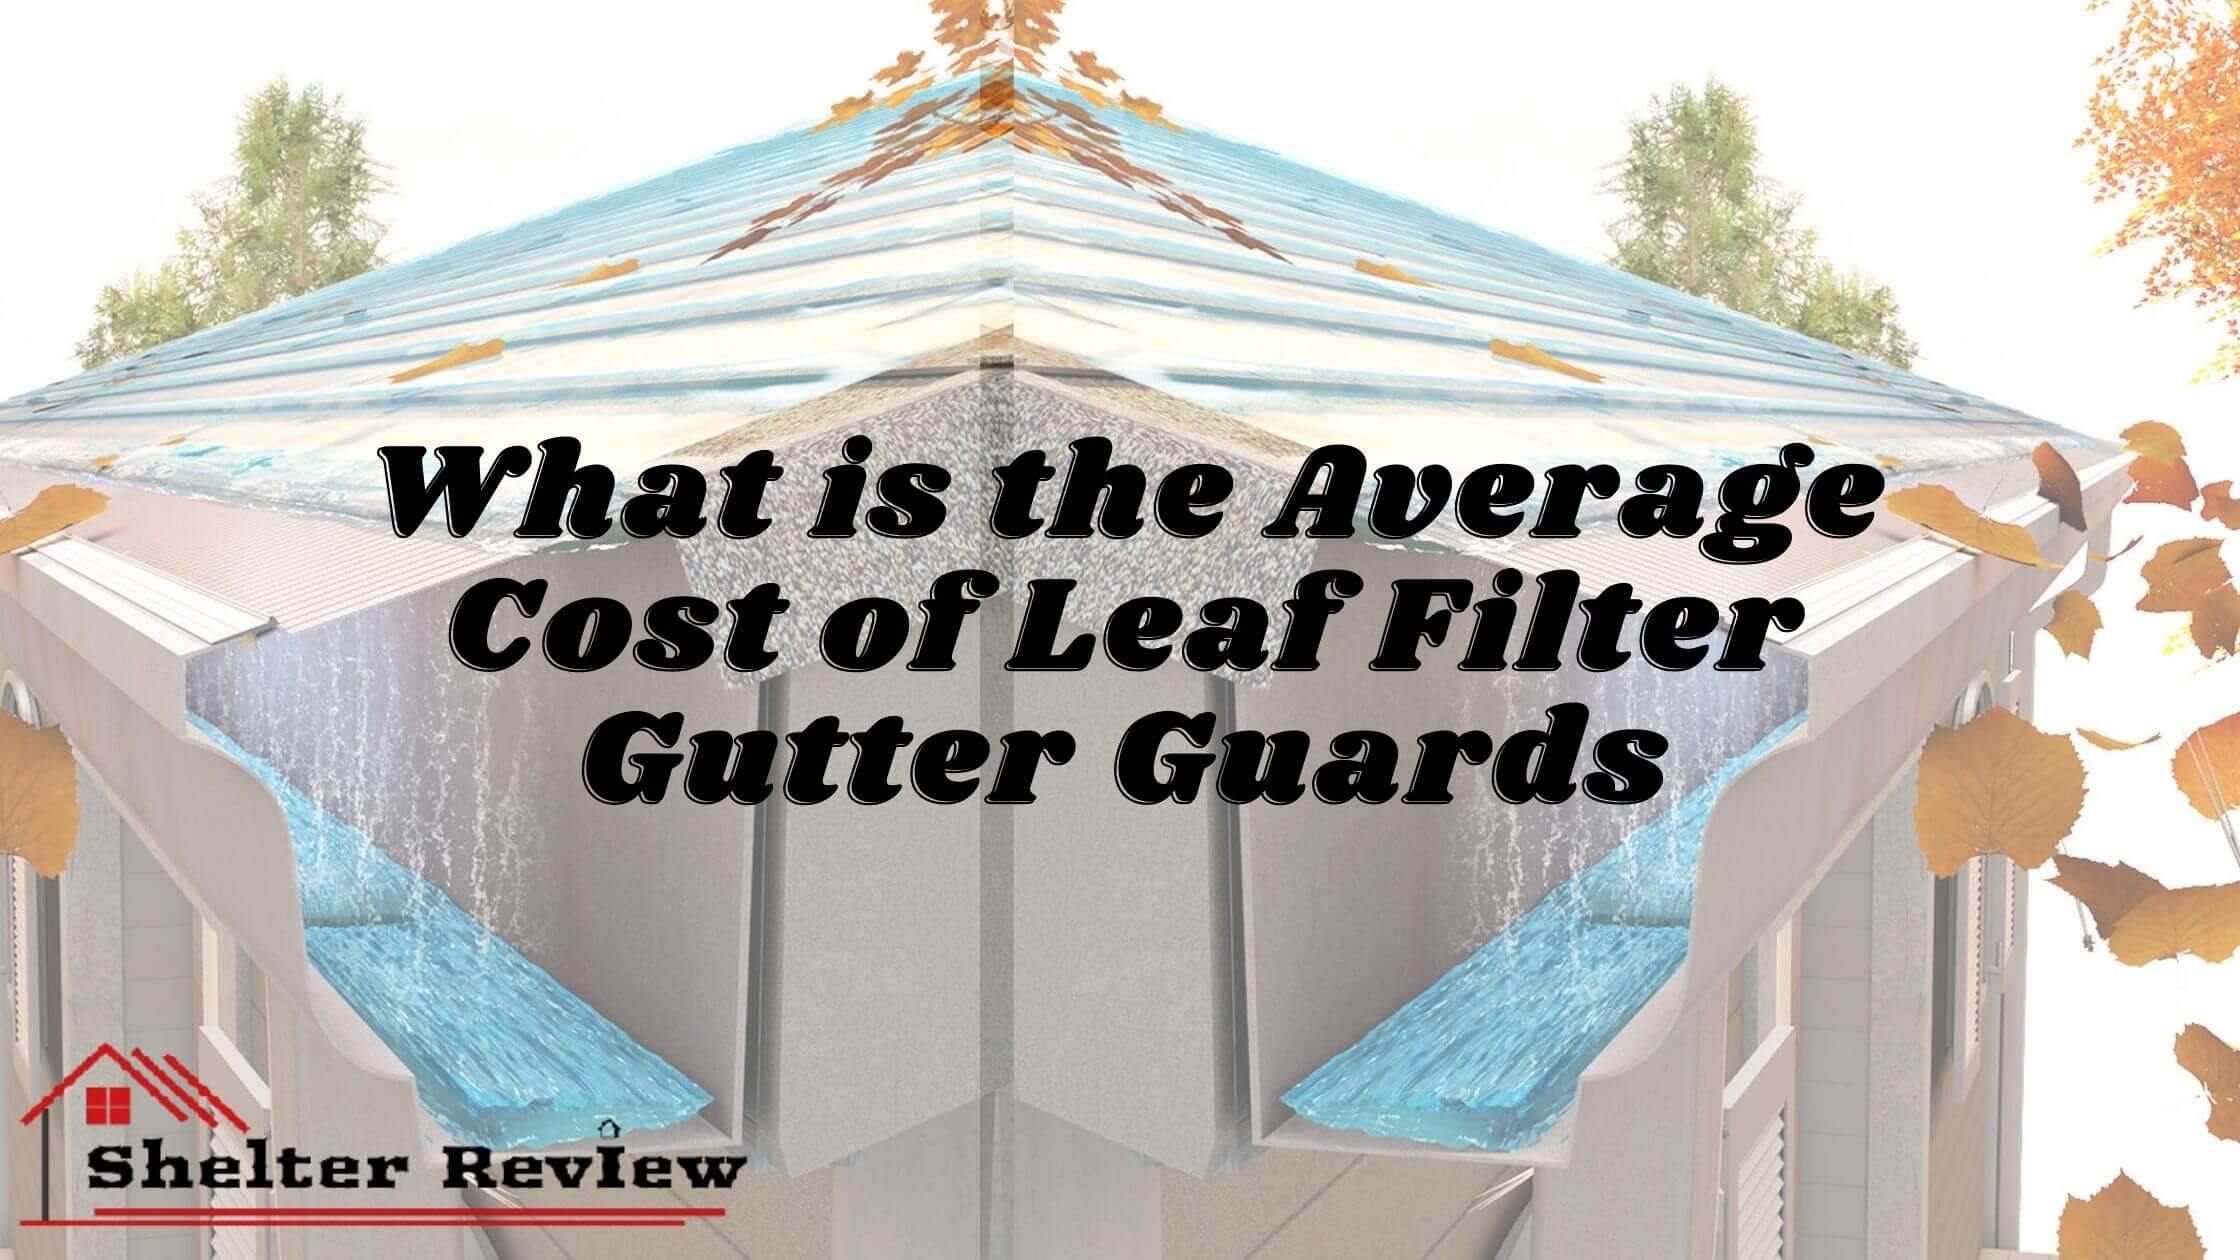 What is the Average Cost of Leaf Filter Gutter Guards